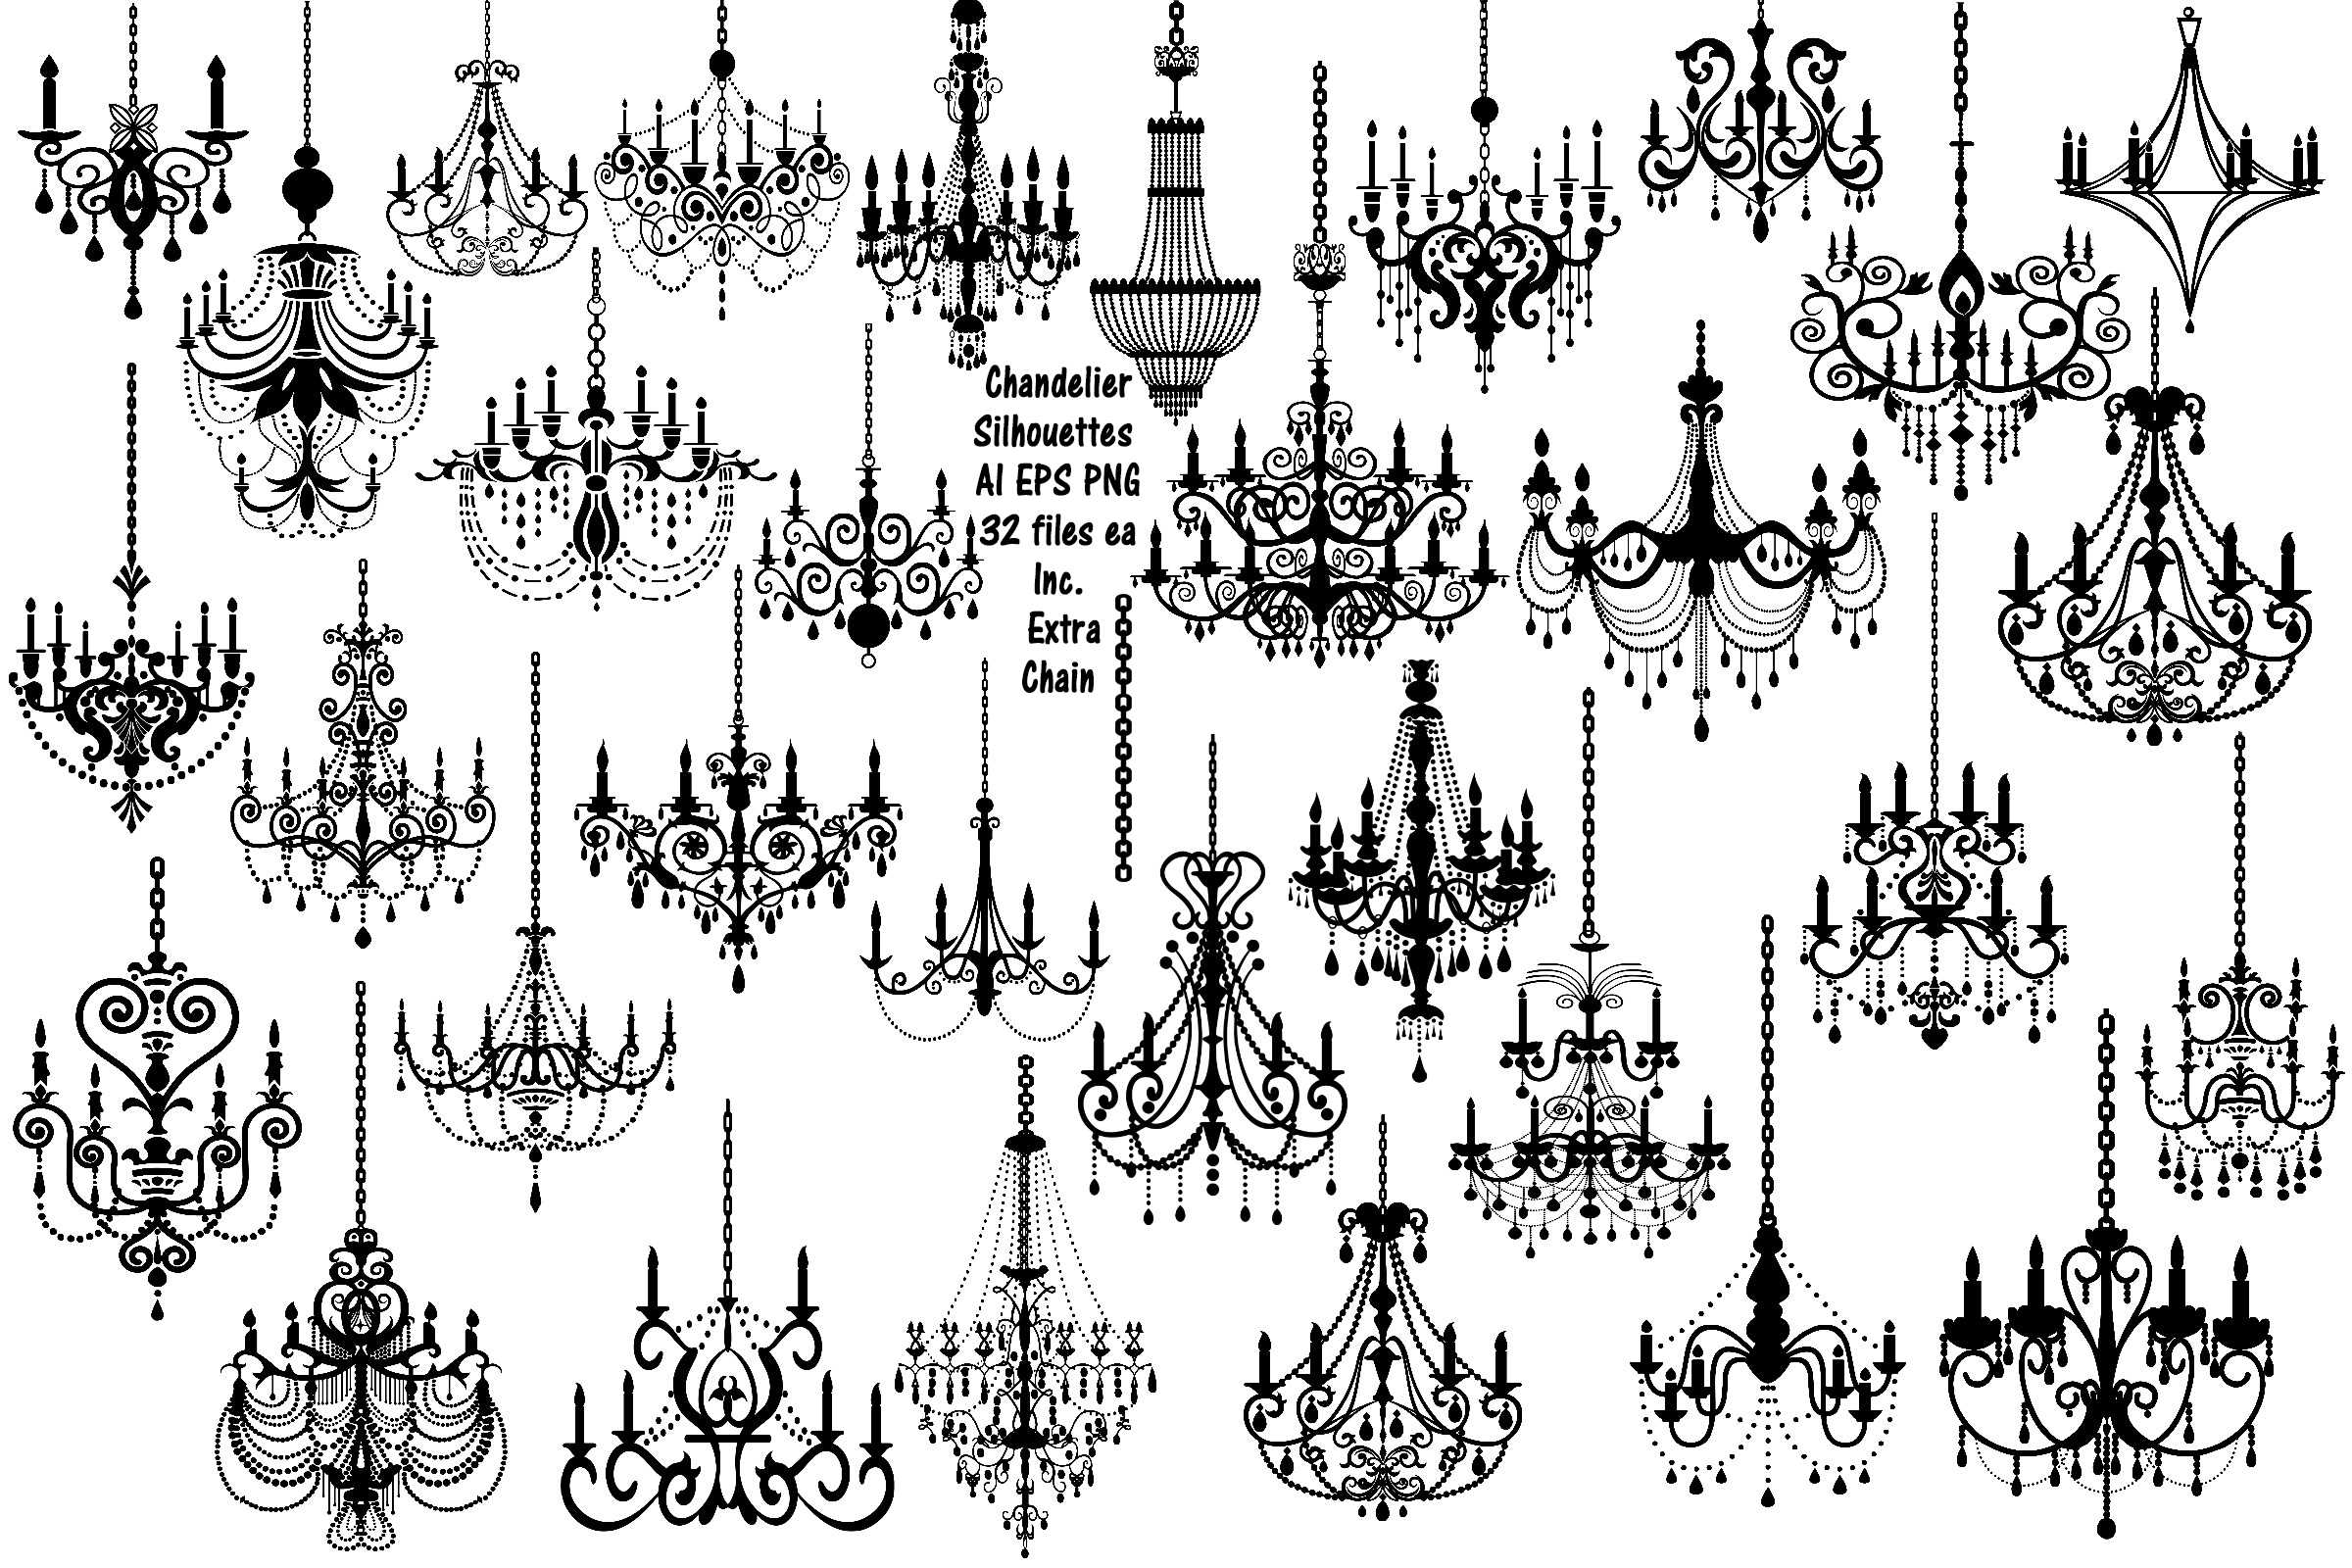 Chandelier Silhouettes Vectors AI EPS PNG example image 1